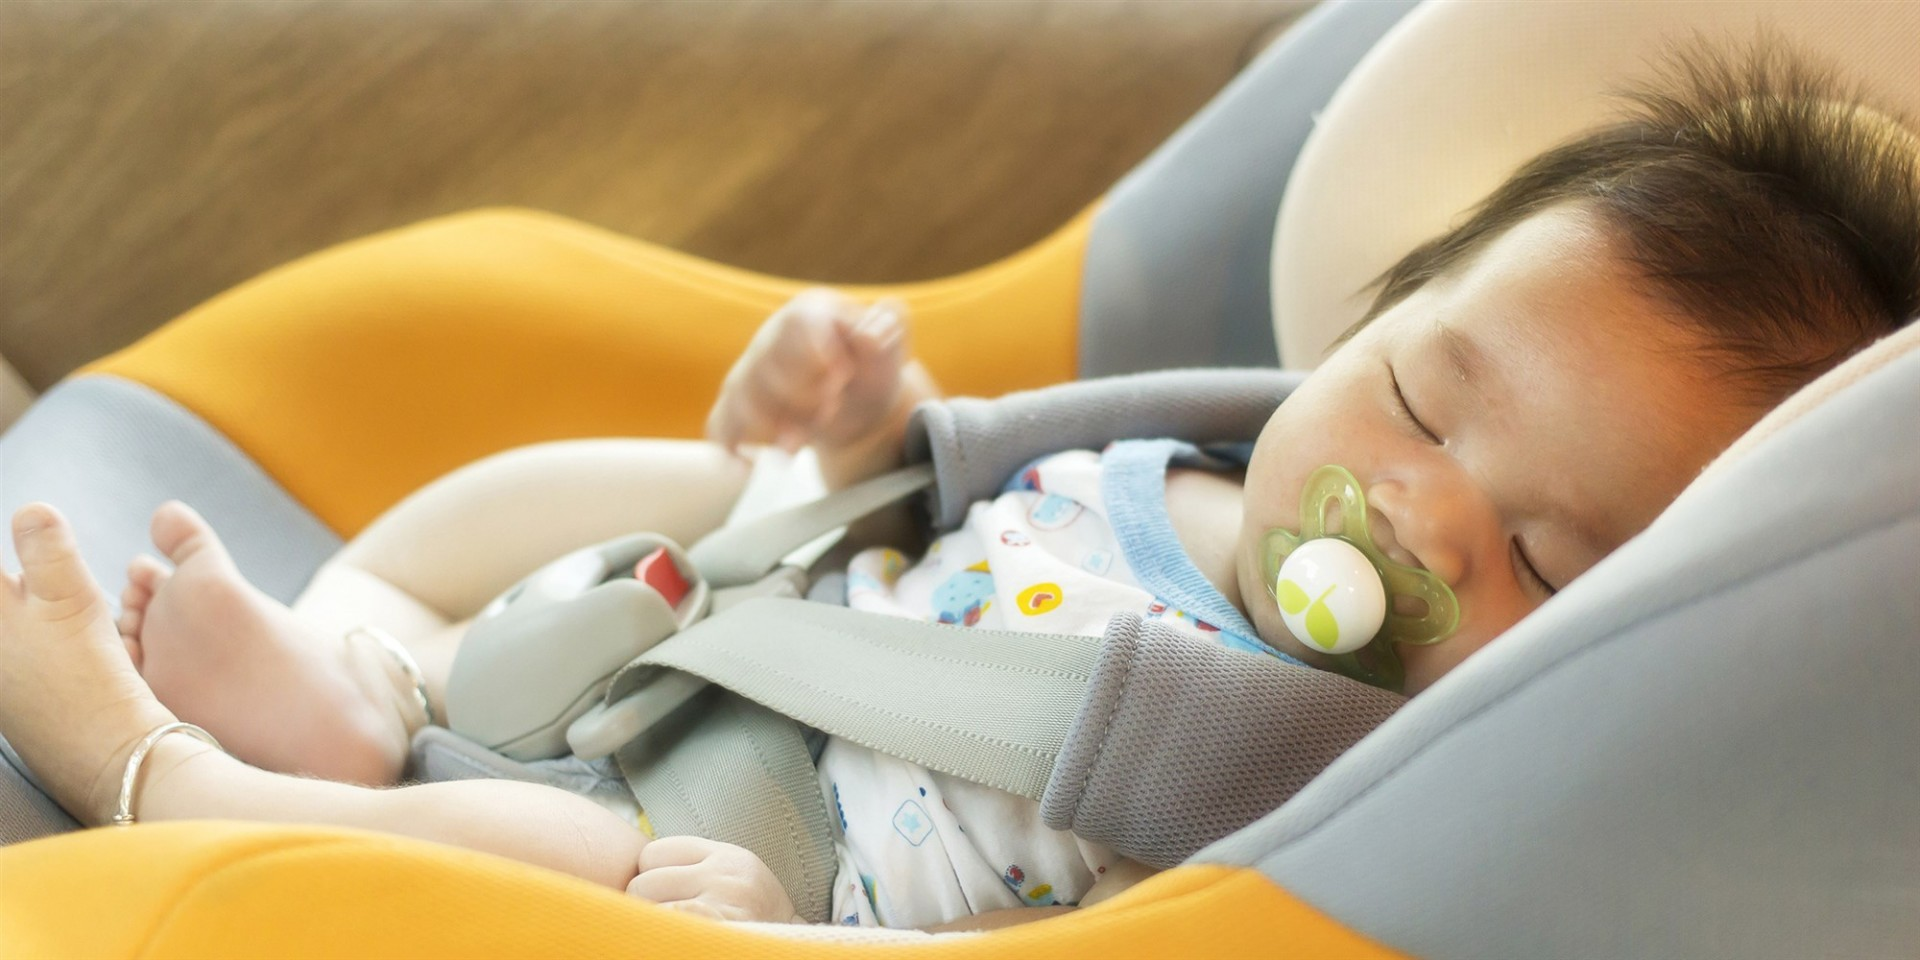 Sleeping baby in car seat